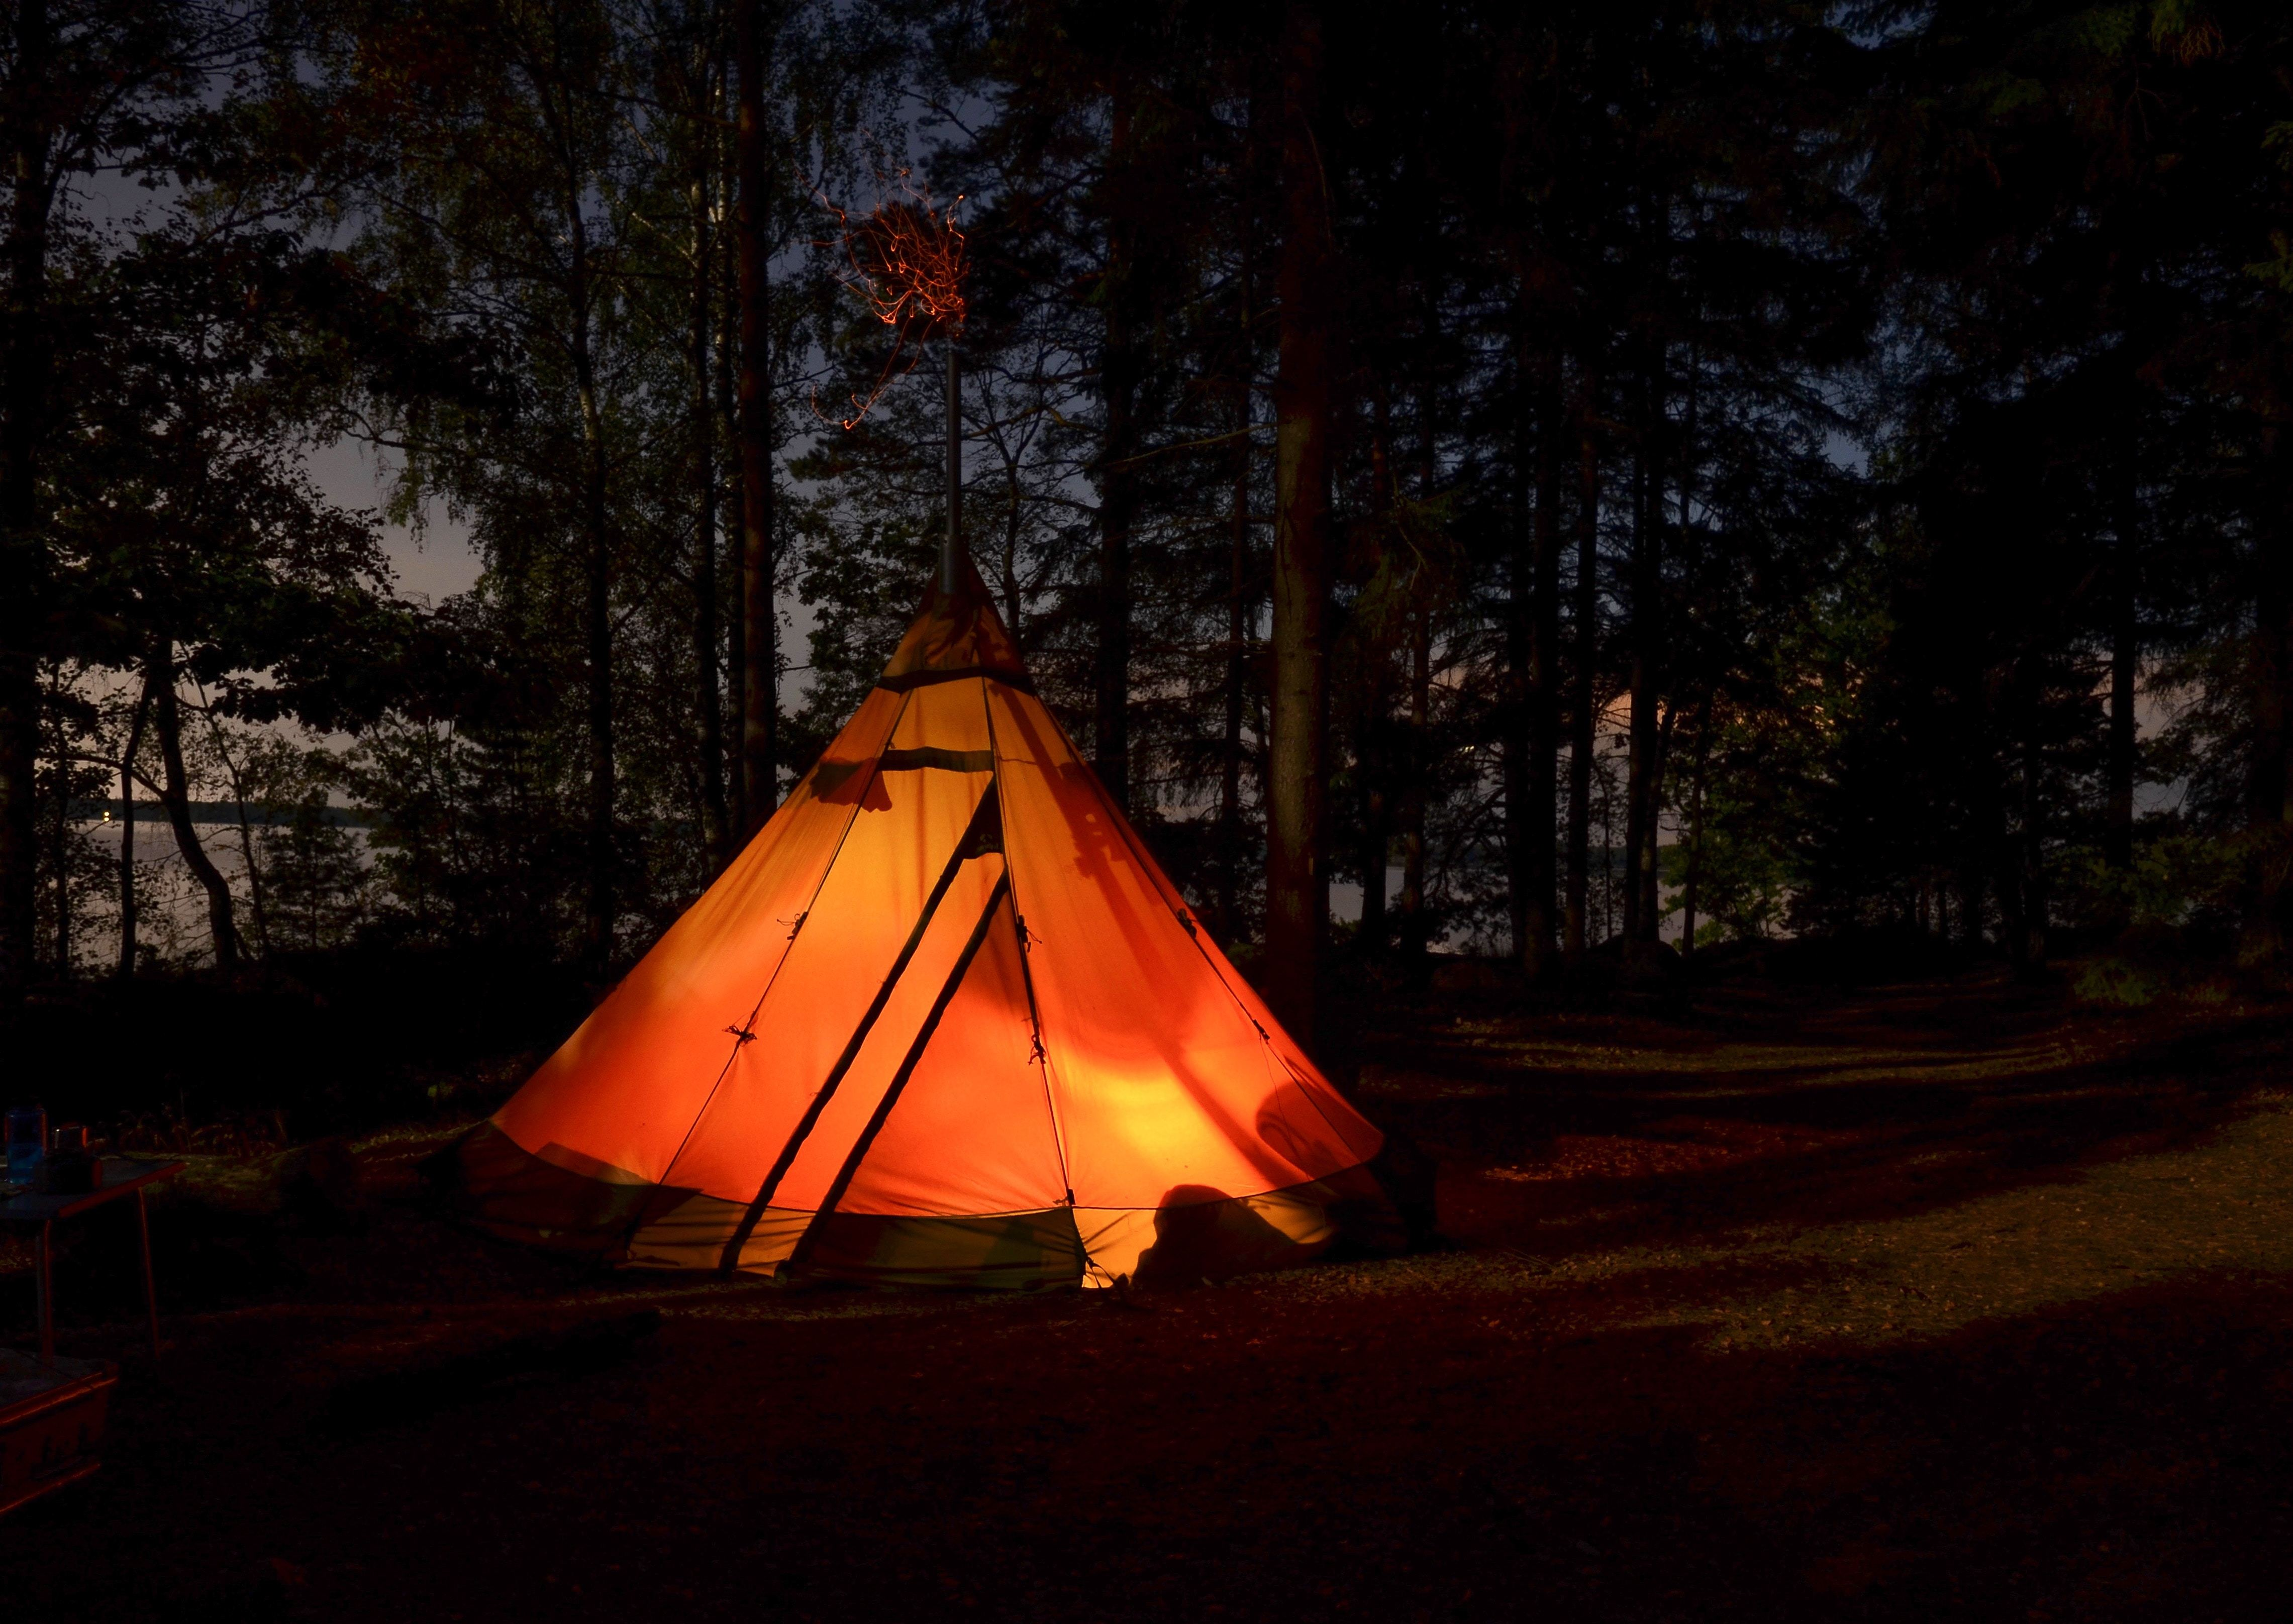 Lighted camping tent in the middle of the night